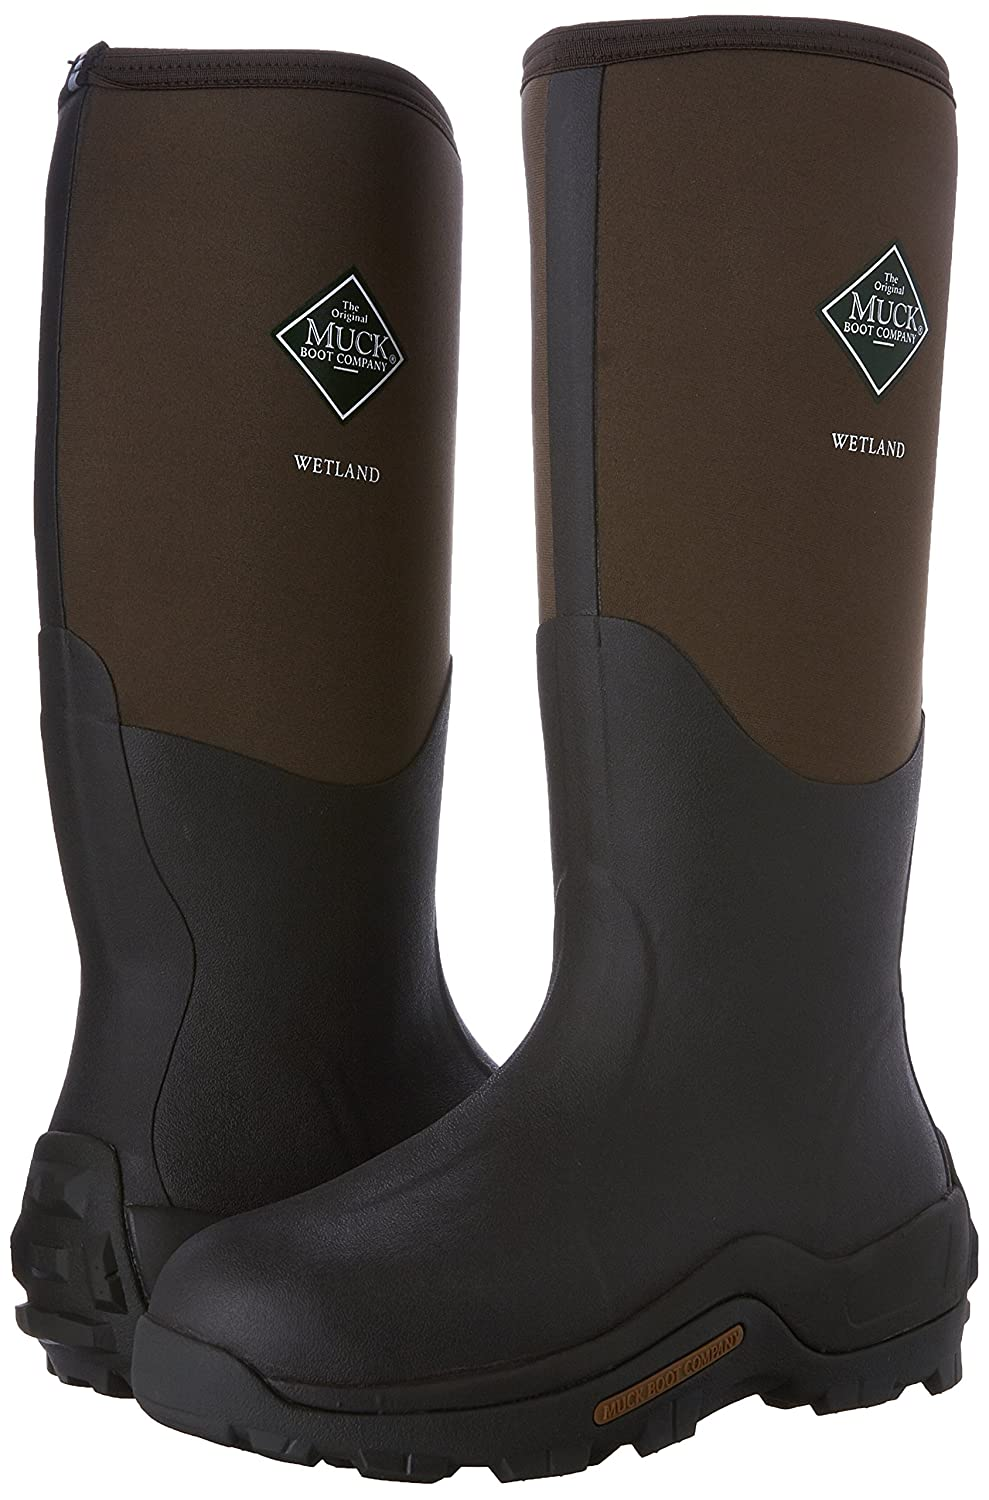 The Original MuckBoots Adult Wetland Boot B000WGB5L0 Men's 10 M/Women's 11 M|Bark